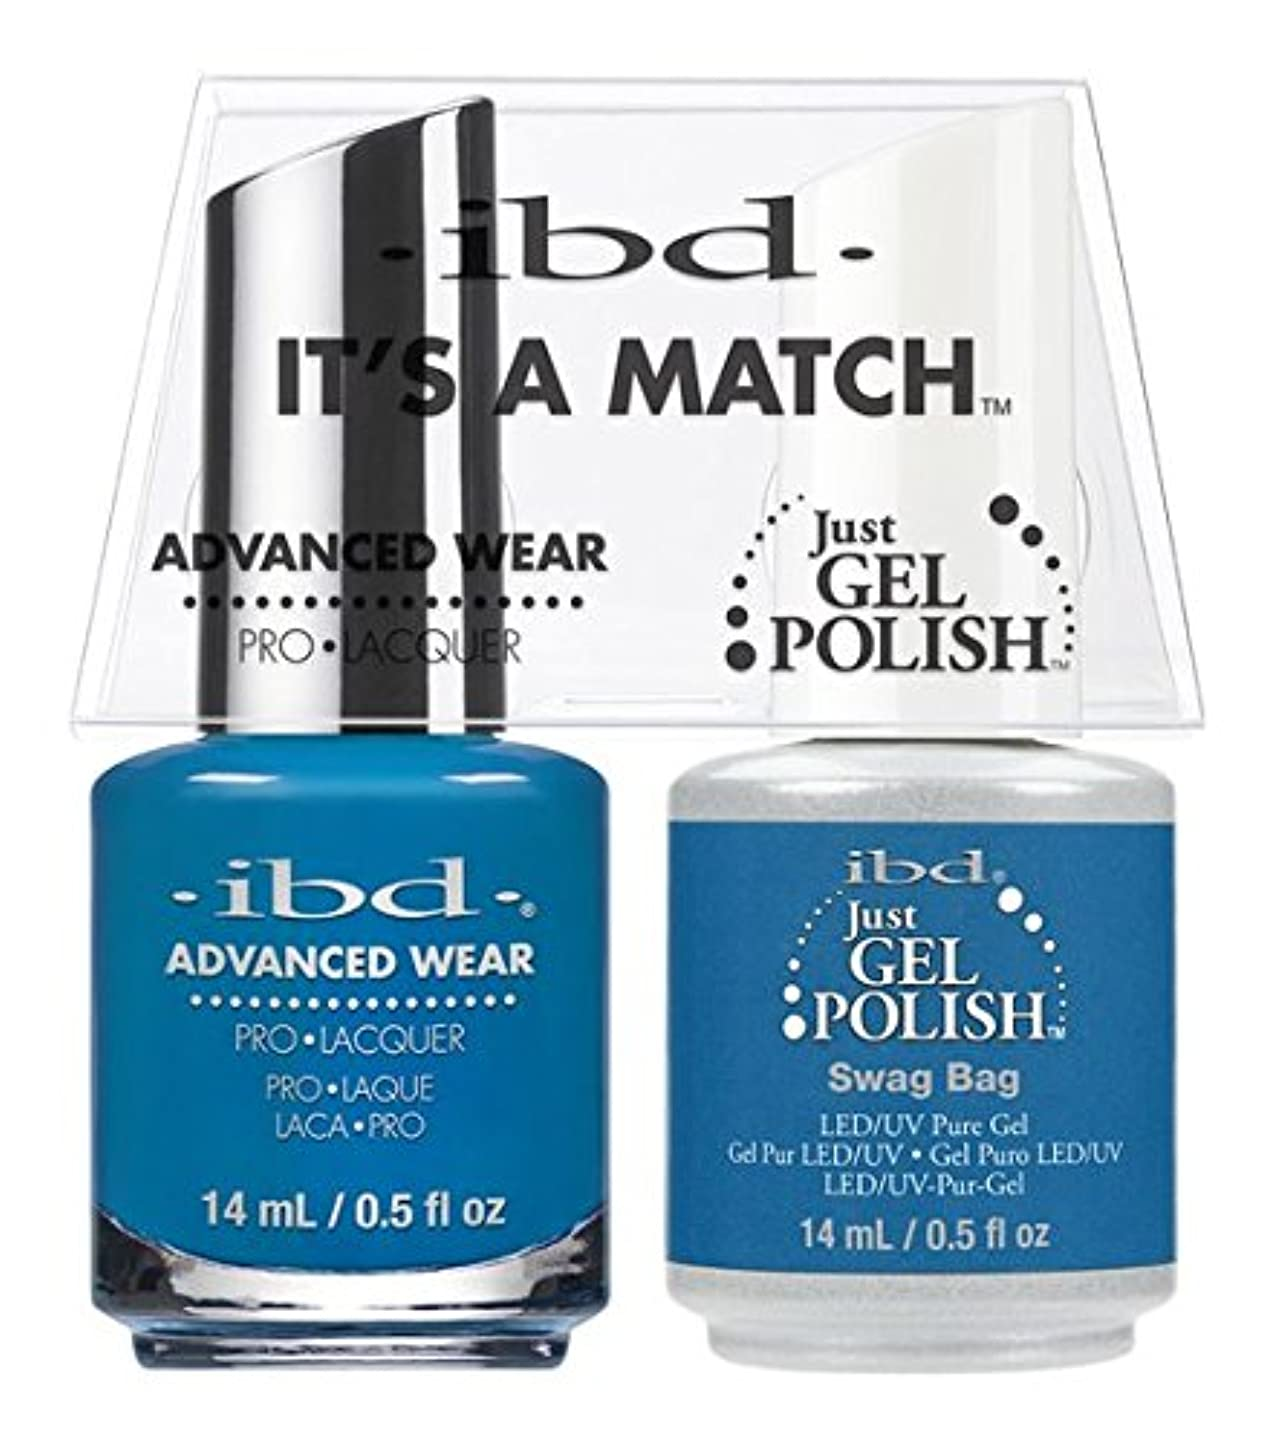 責任空気スクレーパーibd - It's A Match -Duo Pack- Swag Bag - 14 mL / 0.5 oz Each